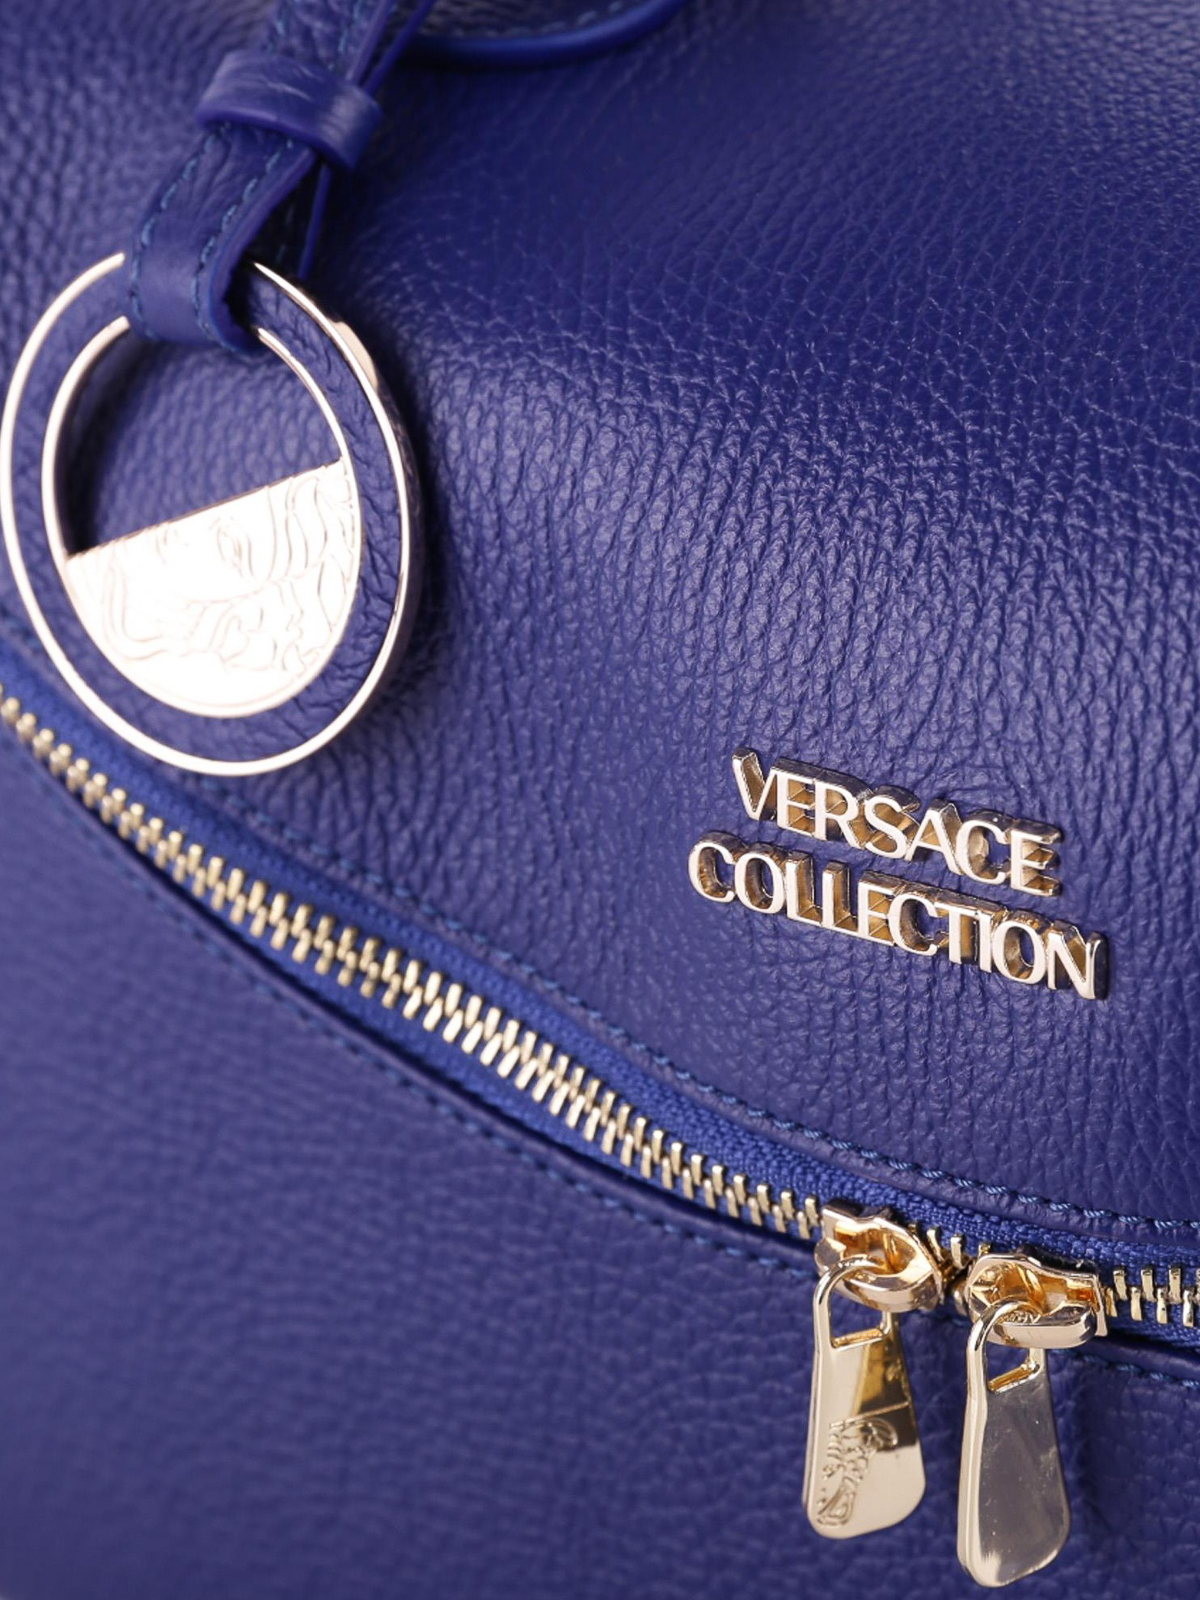 b561beba6229 Versace Collection - Blue hammered leather bowling bag - bowling ...